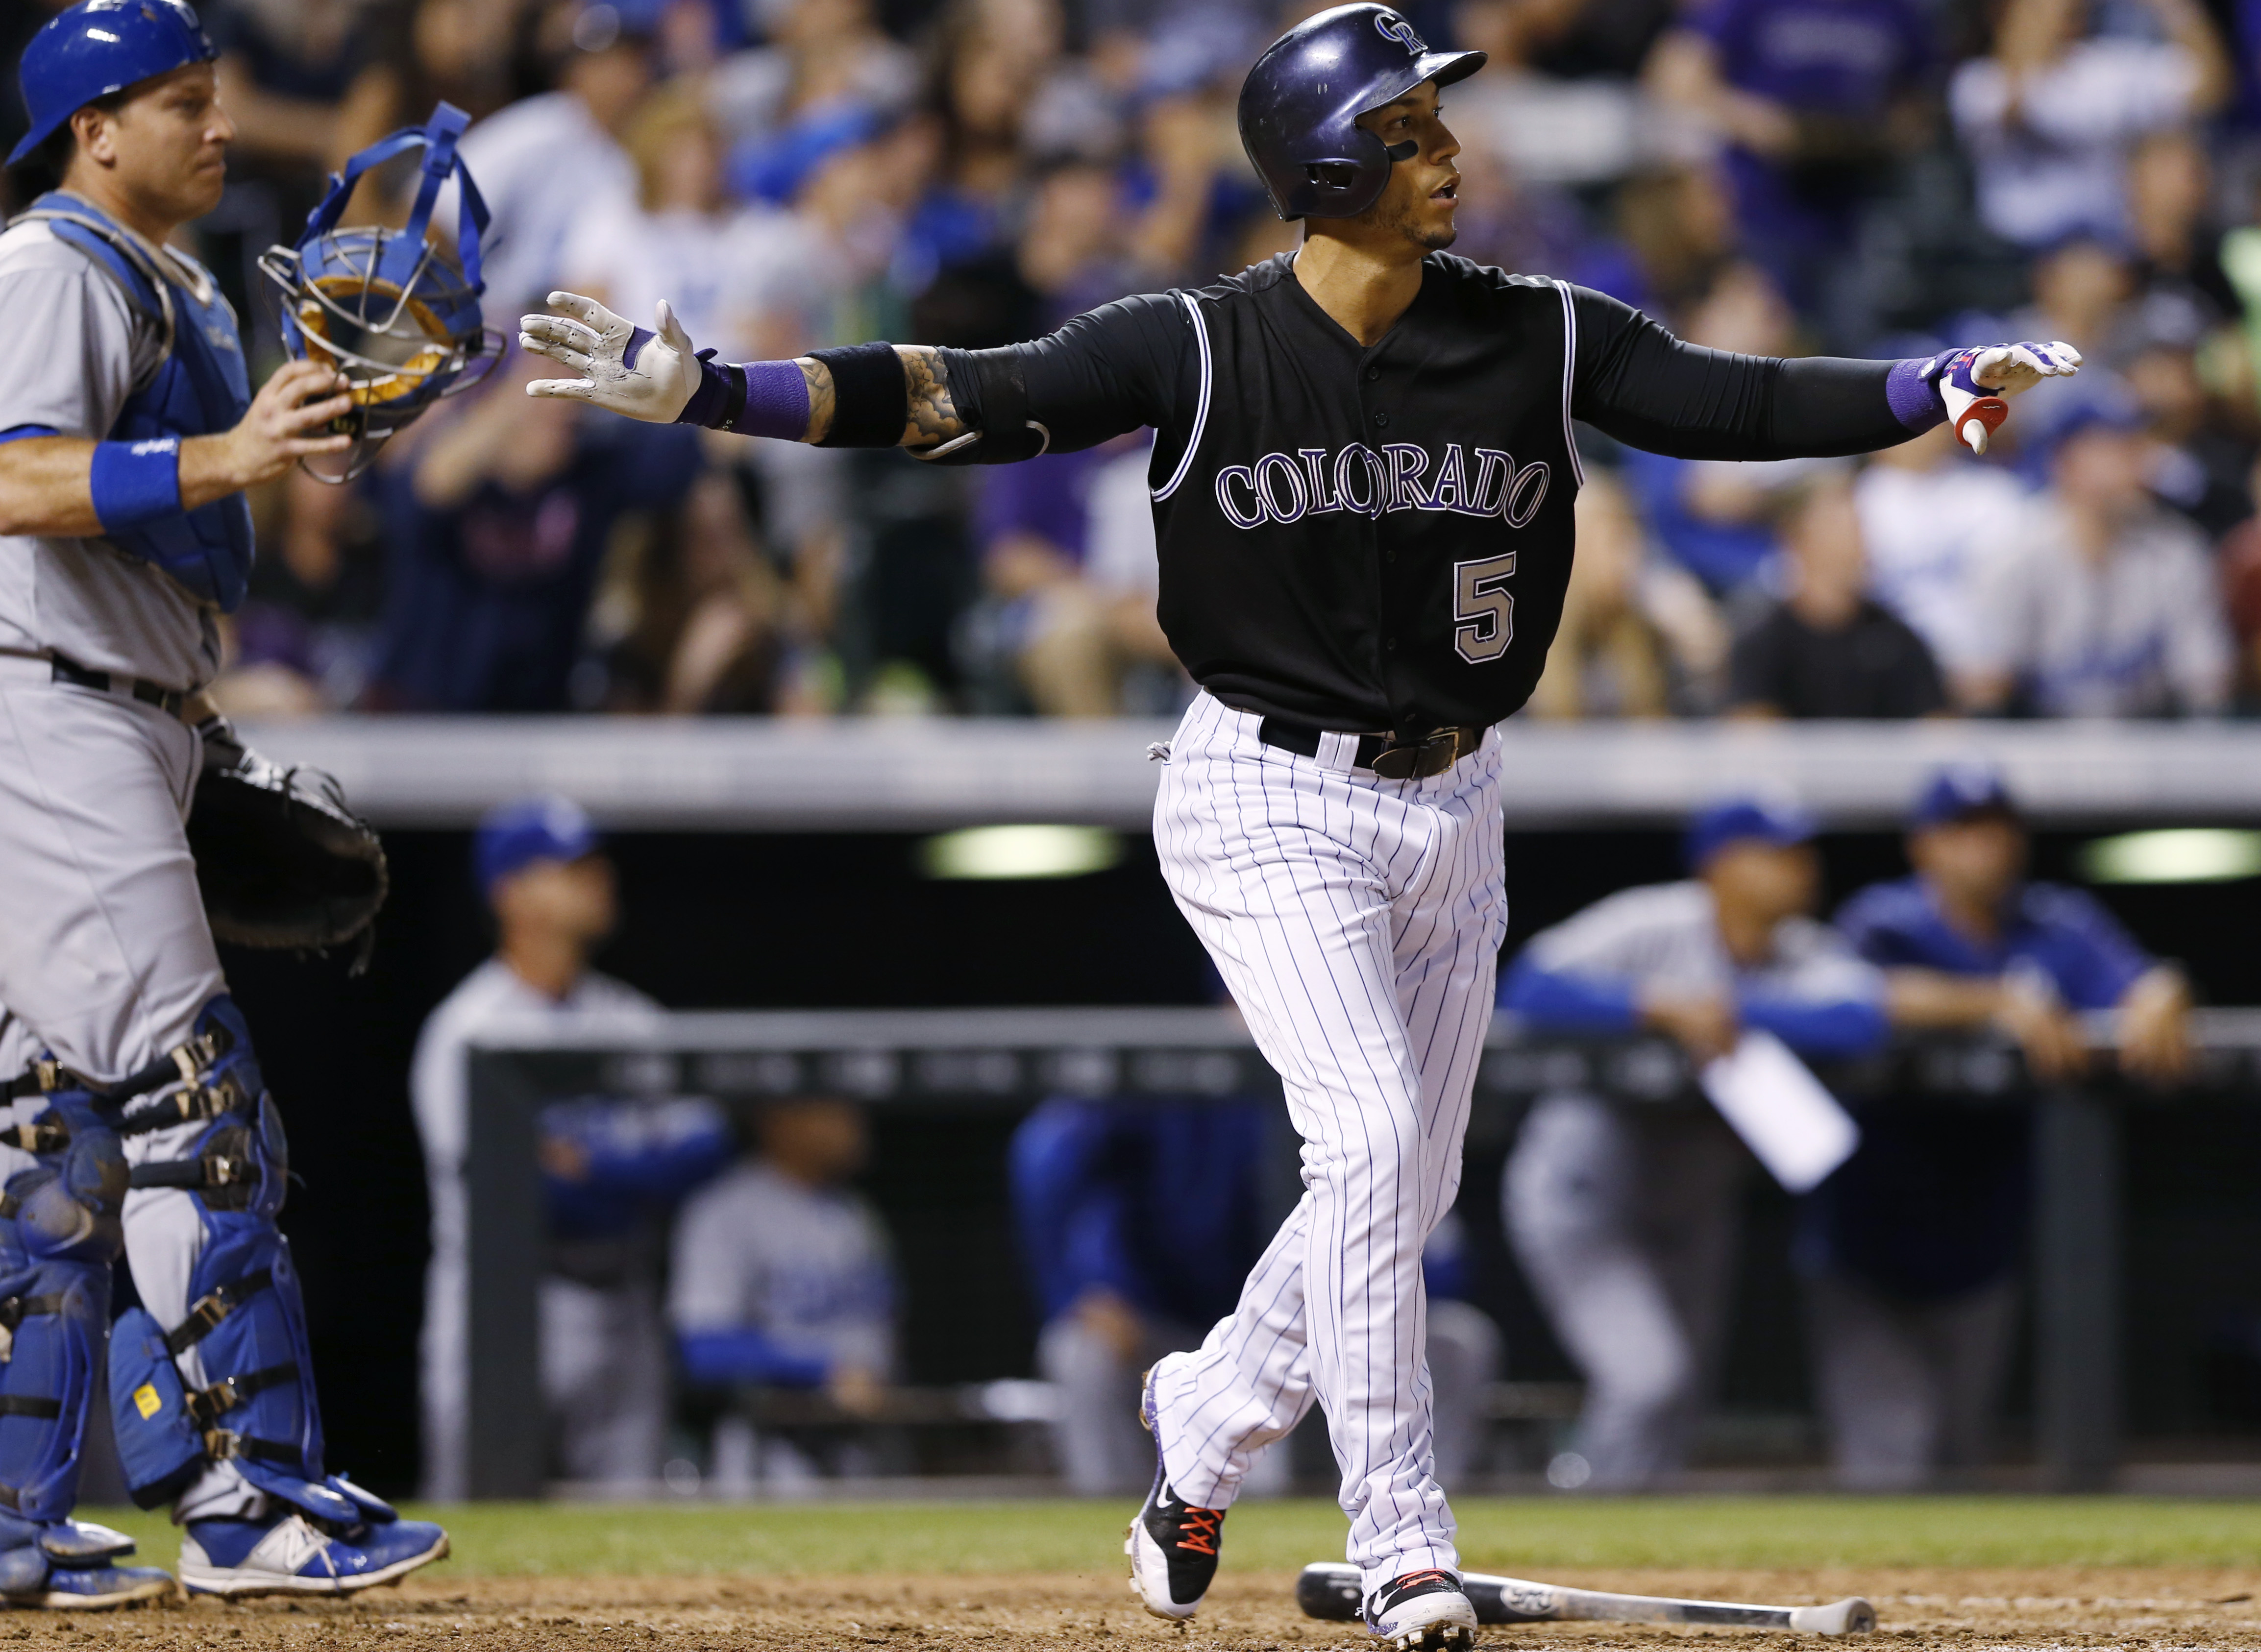 Colorado Rockies' Carlos Gonzalez, right, reacts after hitting a walkoff home run as Los Angeles Dodgers catcher A.J. Ellis looks on in the ninth inning of a baseball game Saturday, Sept. 26, 2015, in Denver. The Rockies won 8-6. (AP Photo/David Zalubowsk